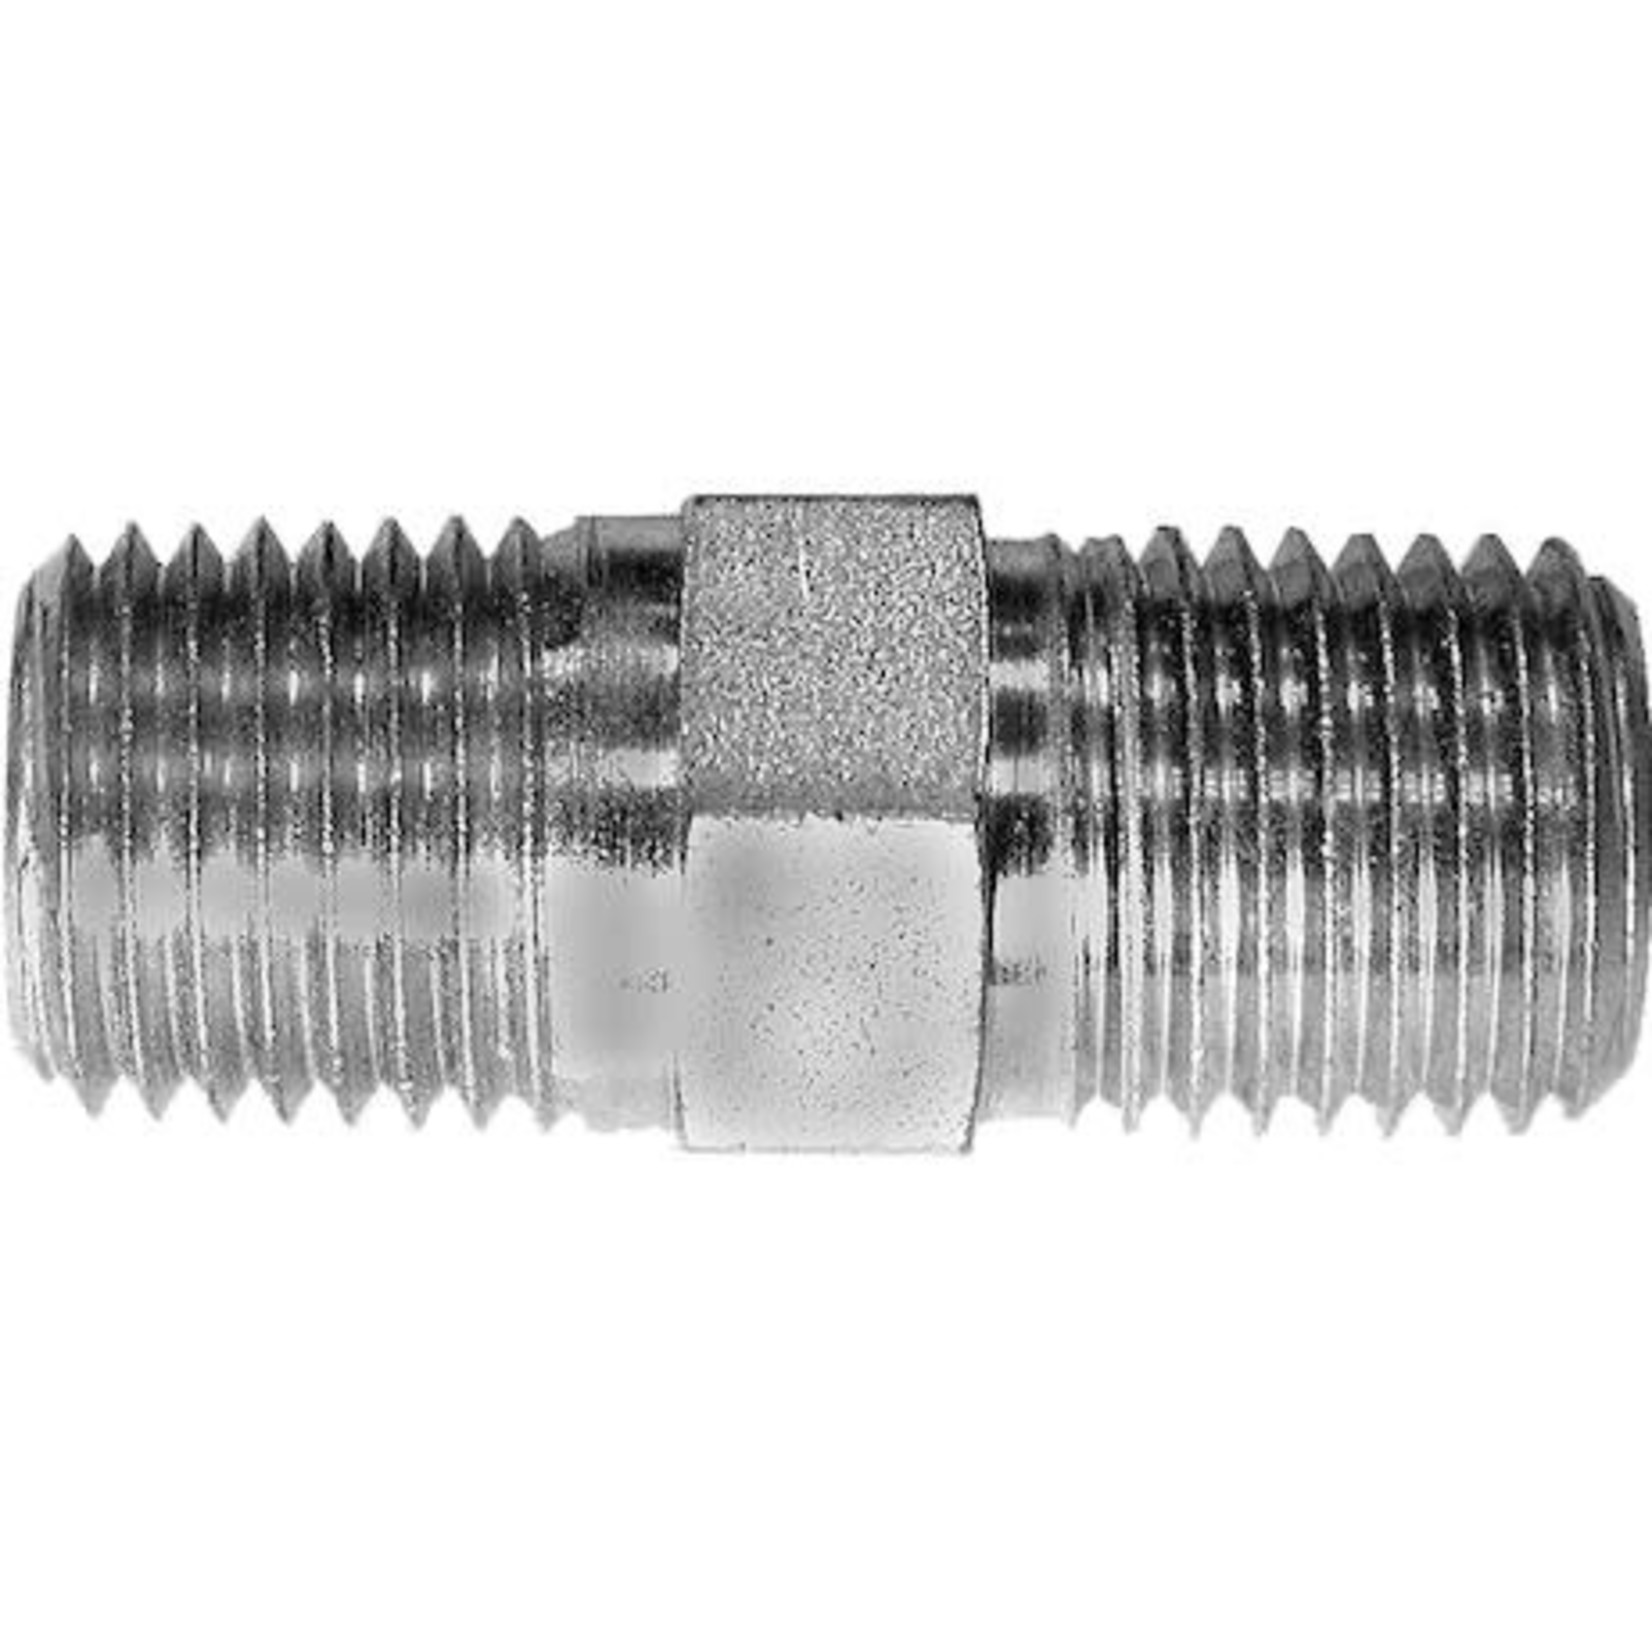 SAM SAM 7/8 Inch Snap Ring-Replaces Fisher #4485